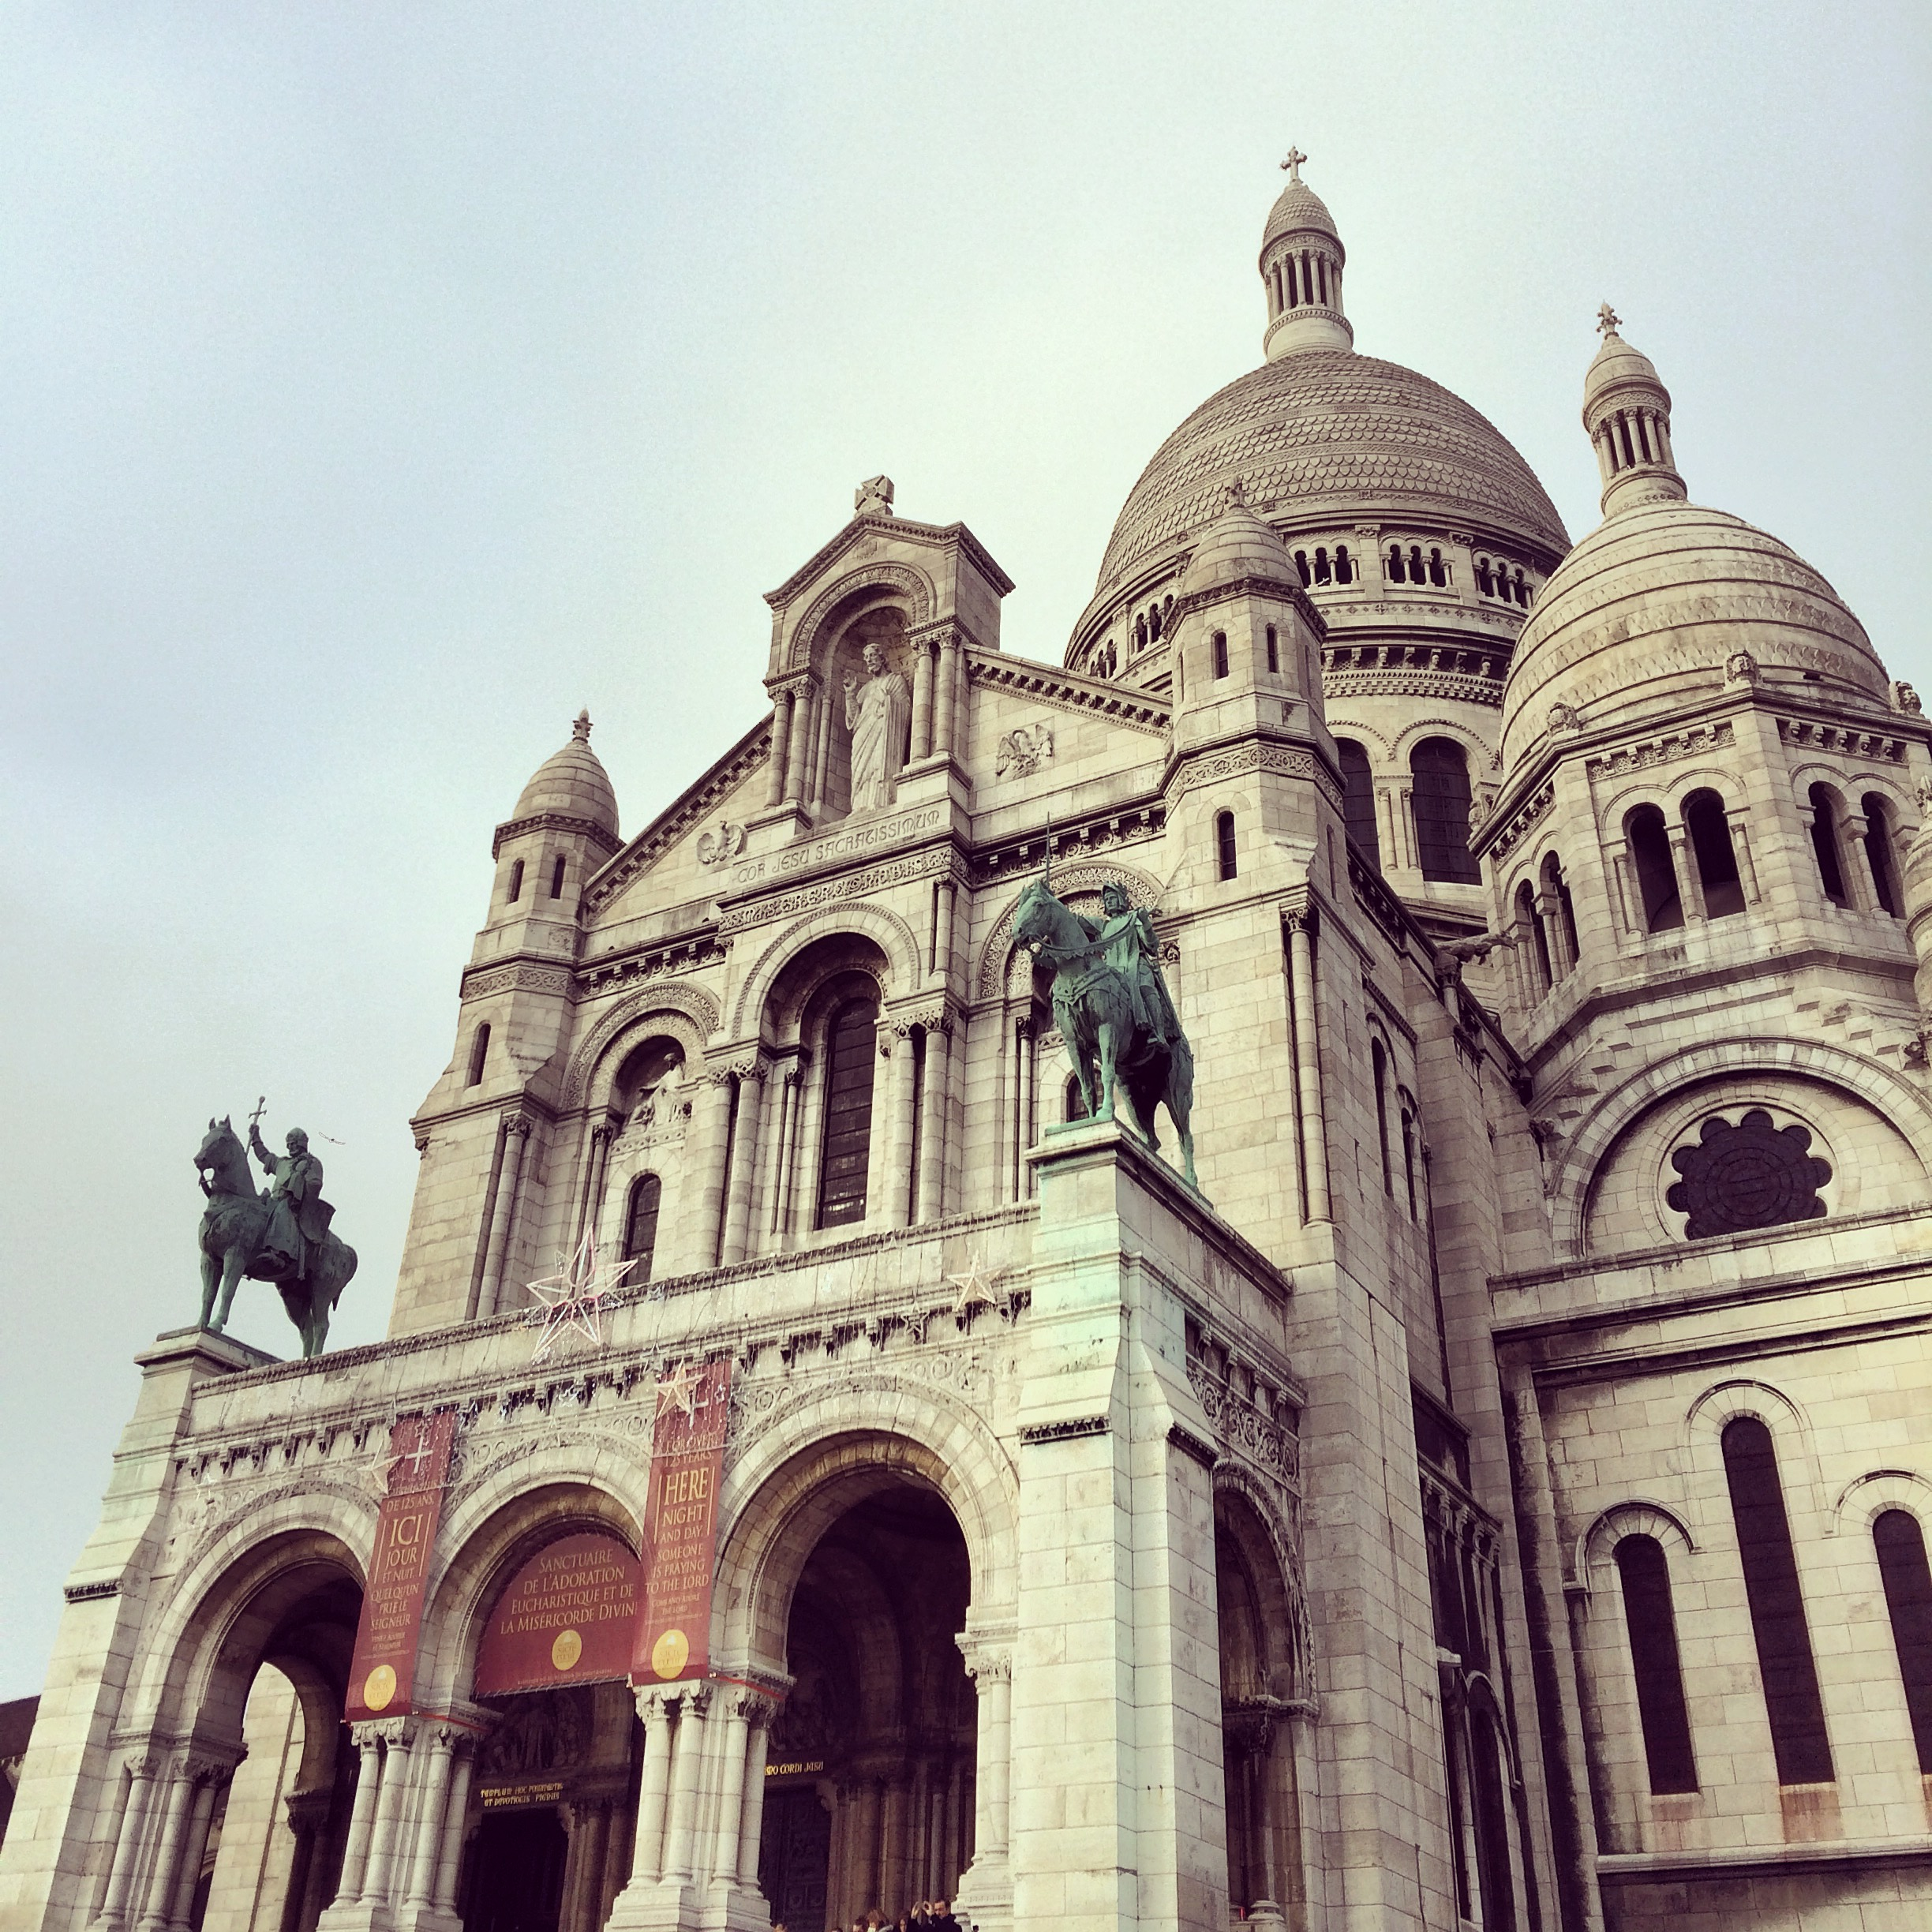 When I was in Paris I went to the Sacré-Cœur and dodged several pickpockets